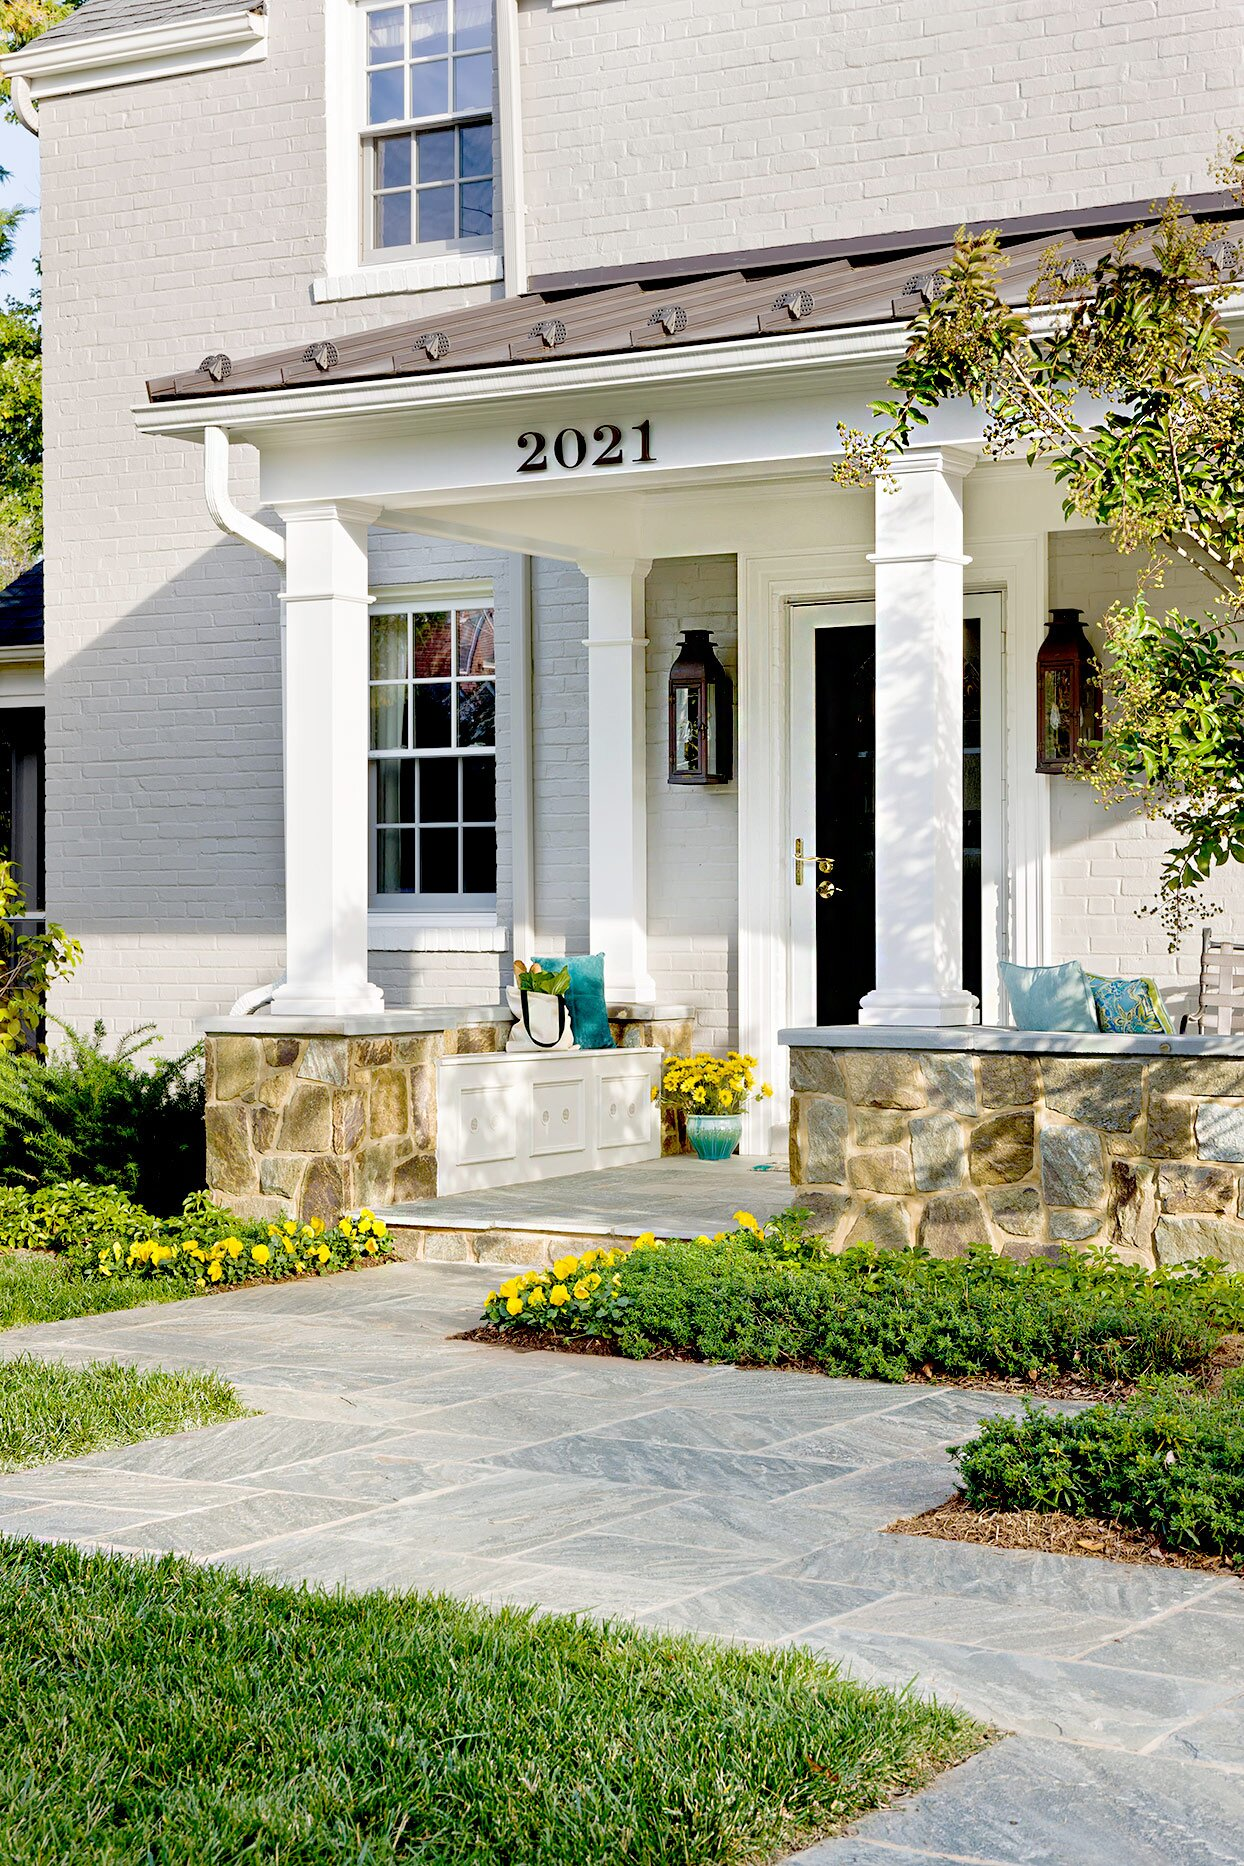 Front entryway with pillars and stone walkway